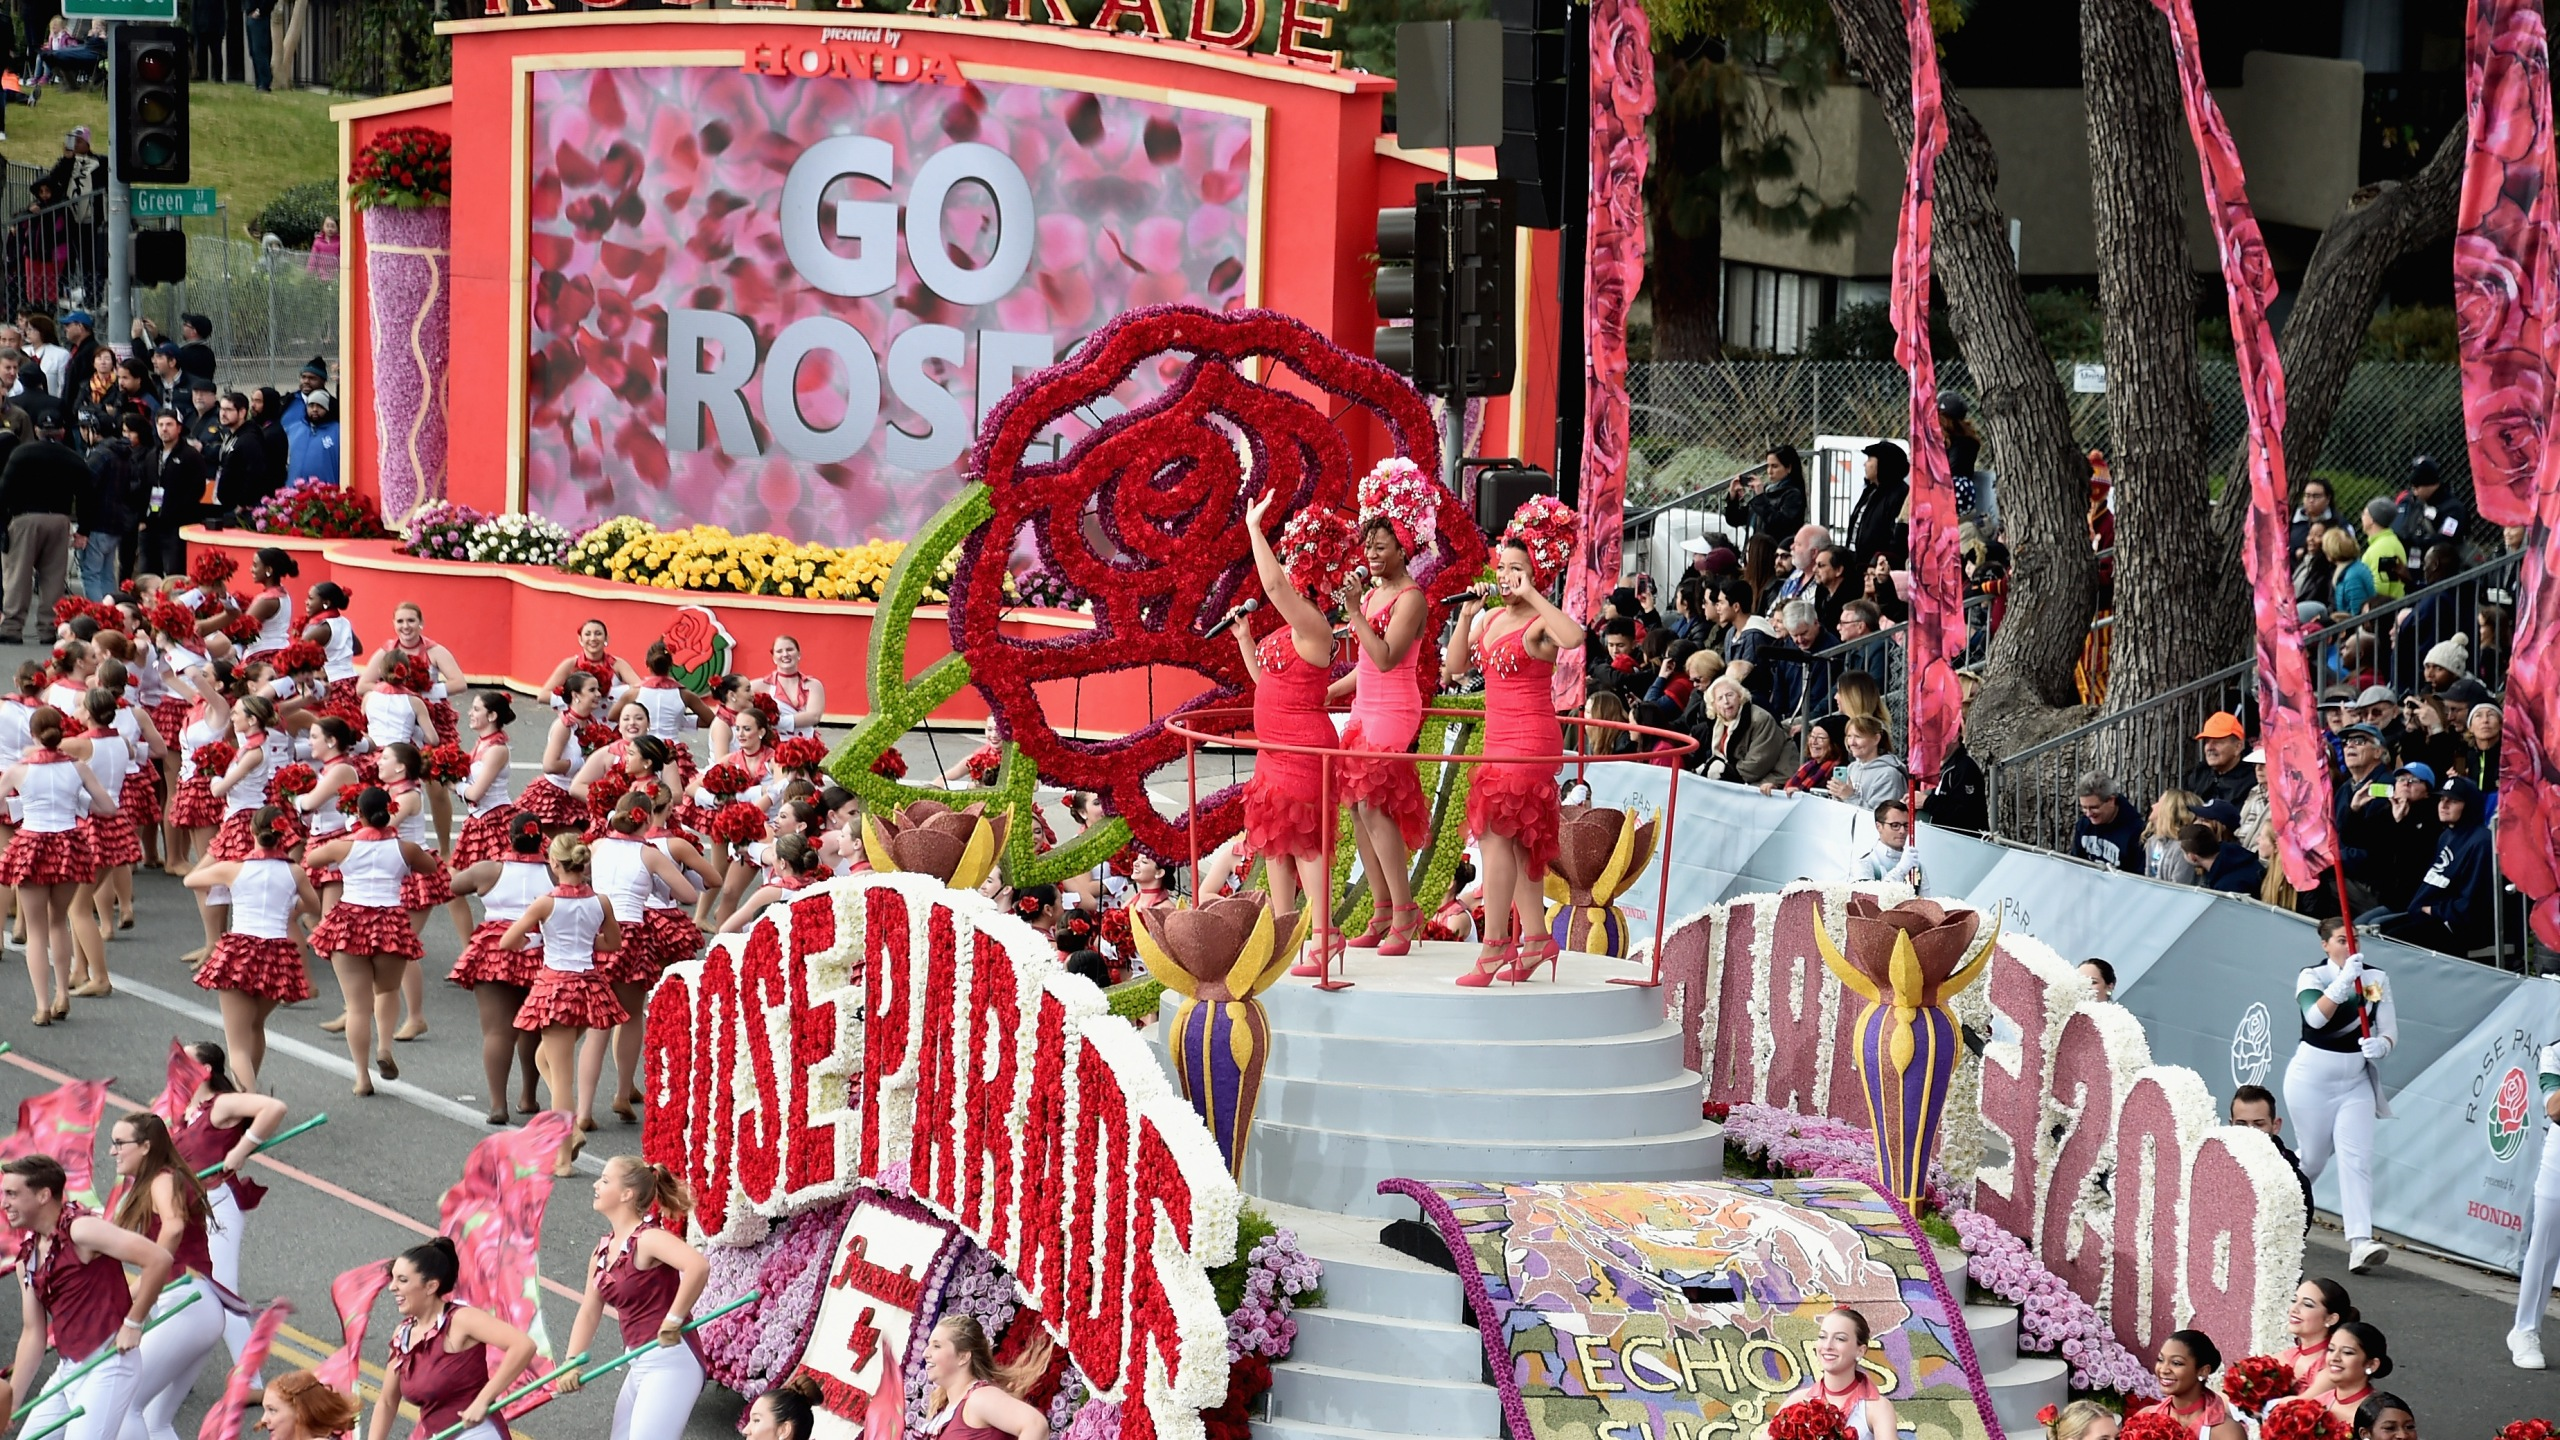 Performers open the 128th Tournament of Roses Parade Presented by Honda on Jan. 2, 2017, in Pasadena, California. (Credit: Alberto E. Rodriguez/Getty Images)